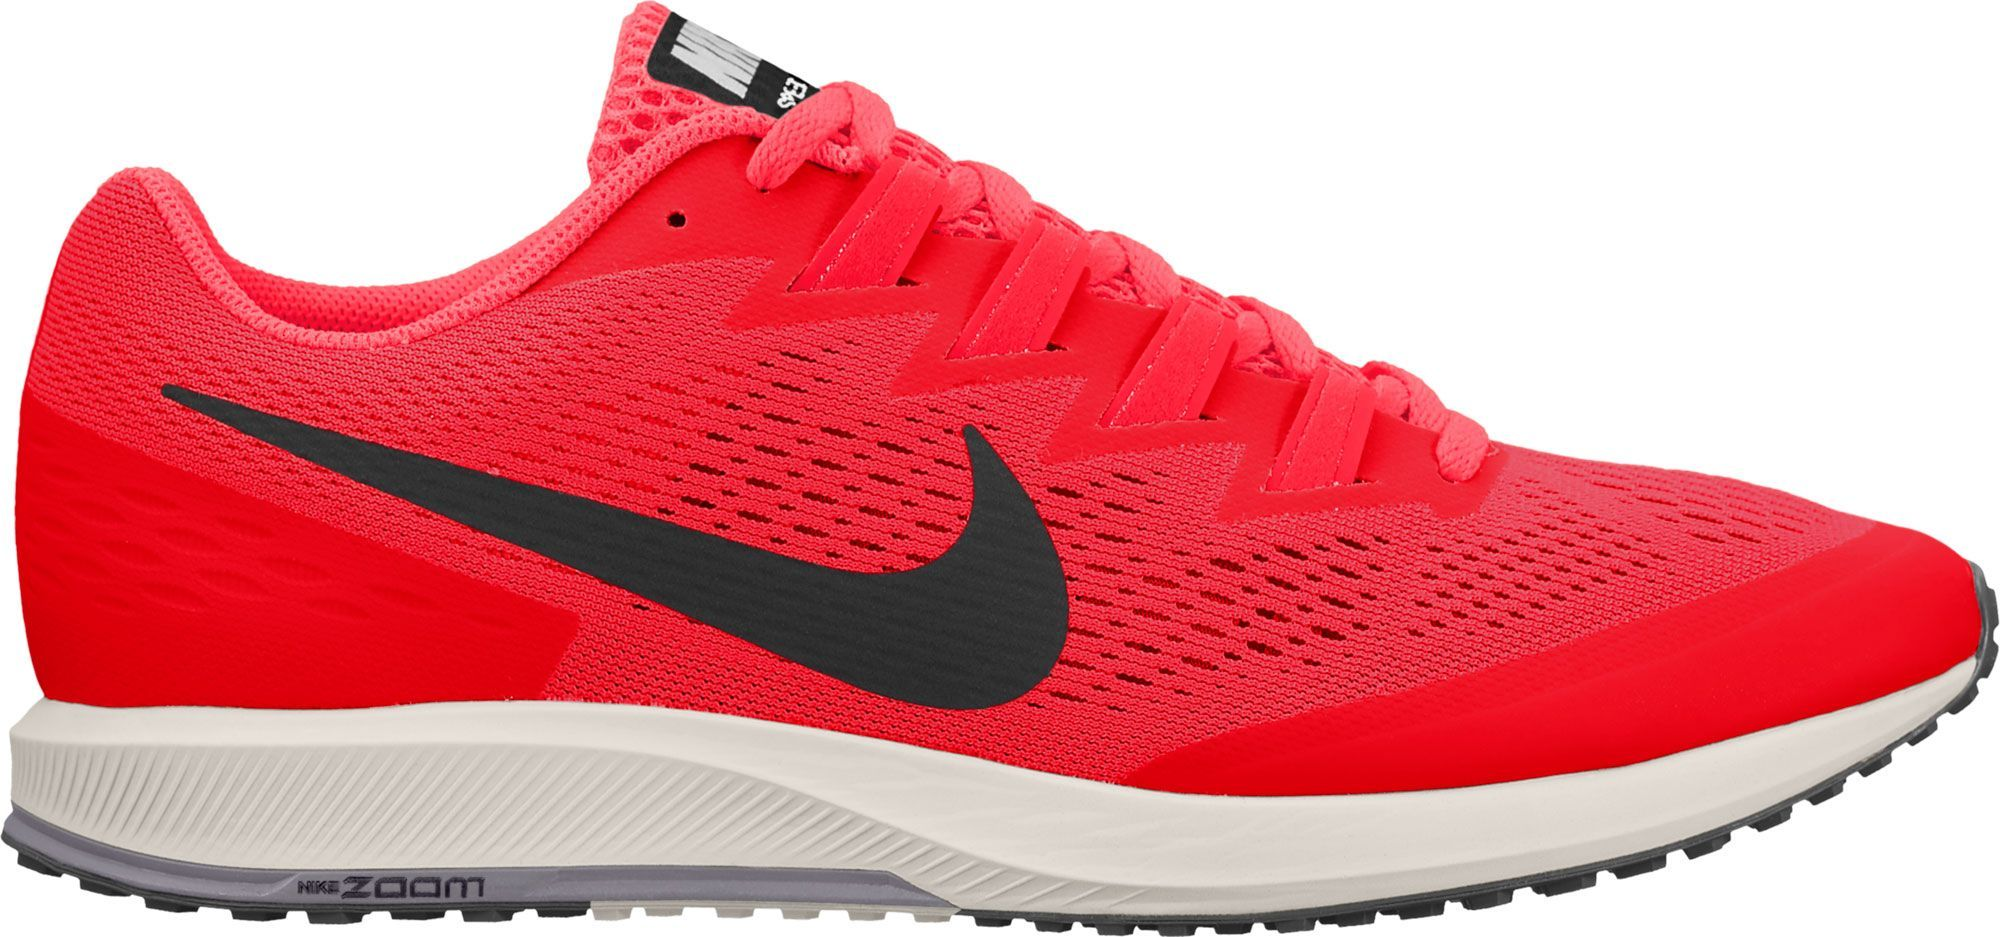 Nike Zoom Speed Rival 6 Cross Country